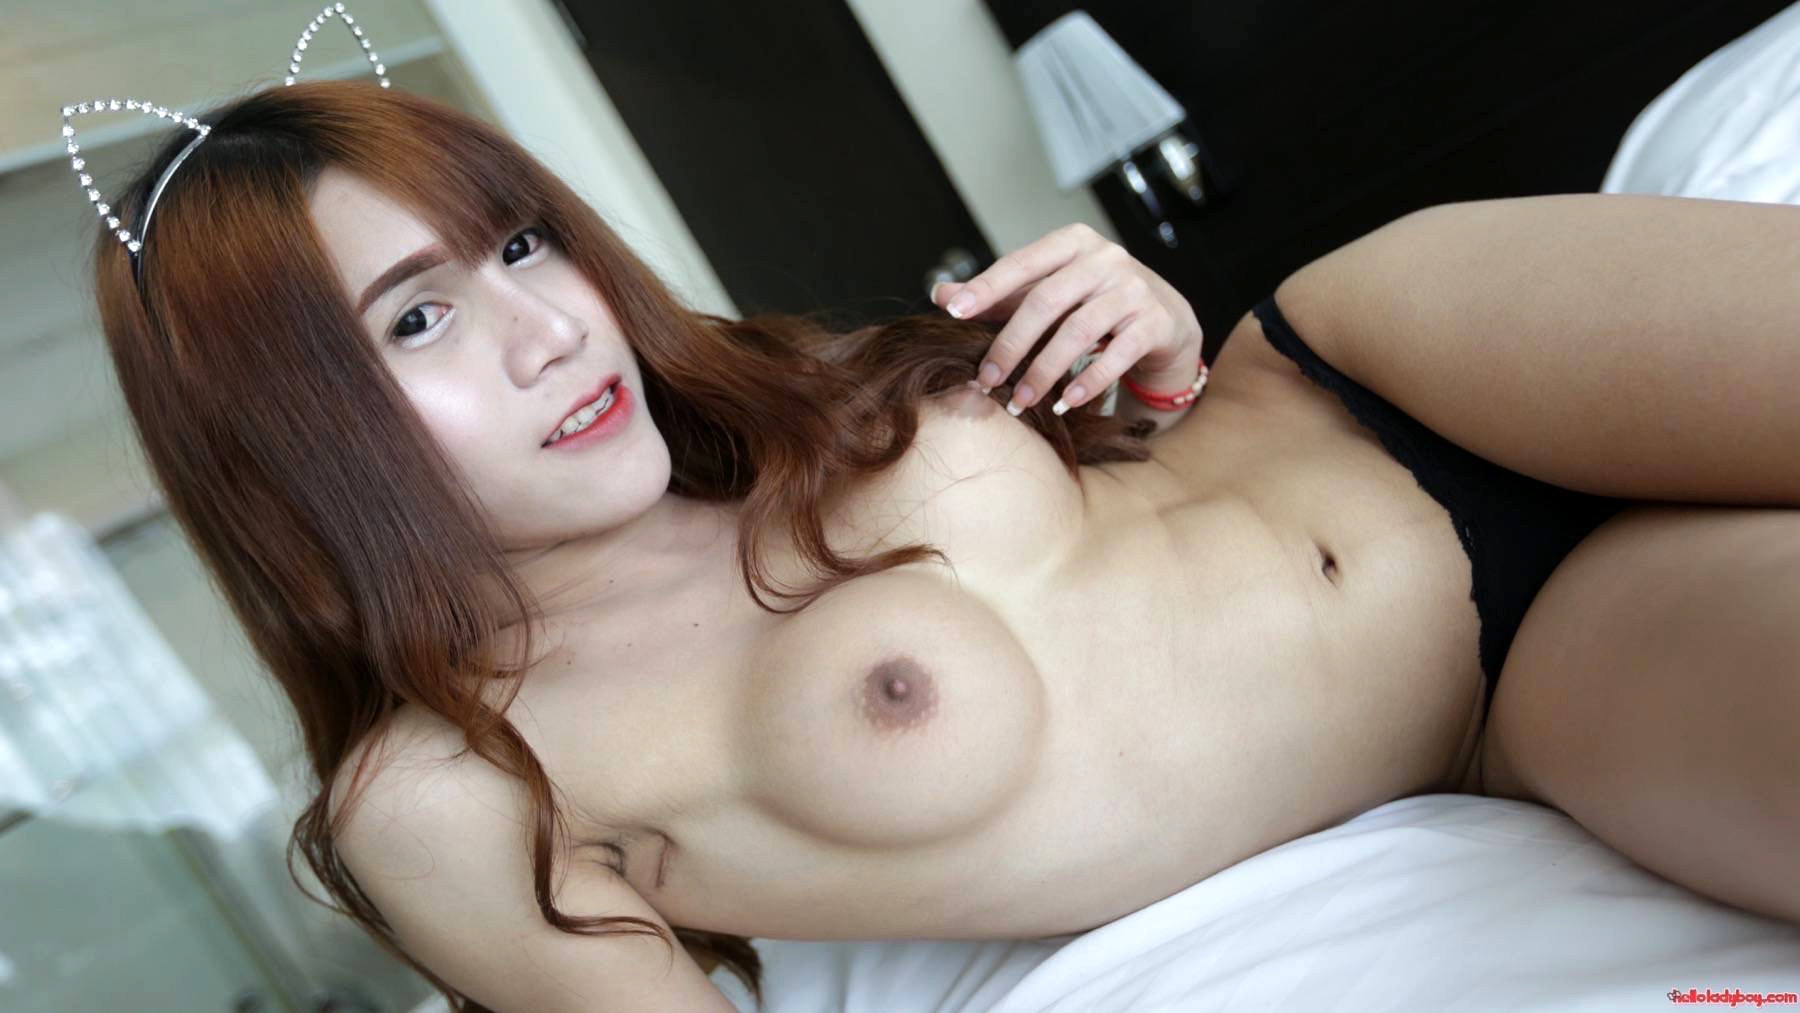 18 Year Old Sensuous Asian With Long Red Hair And Busty TGirl Strips